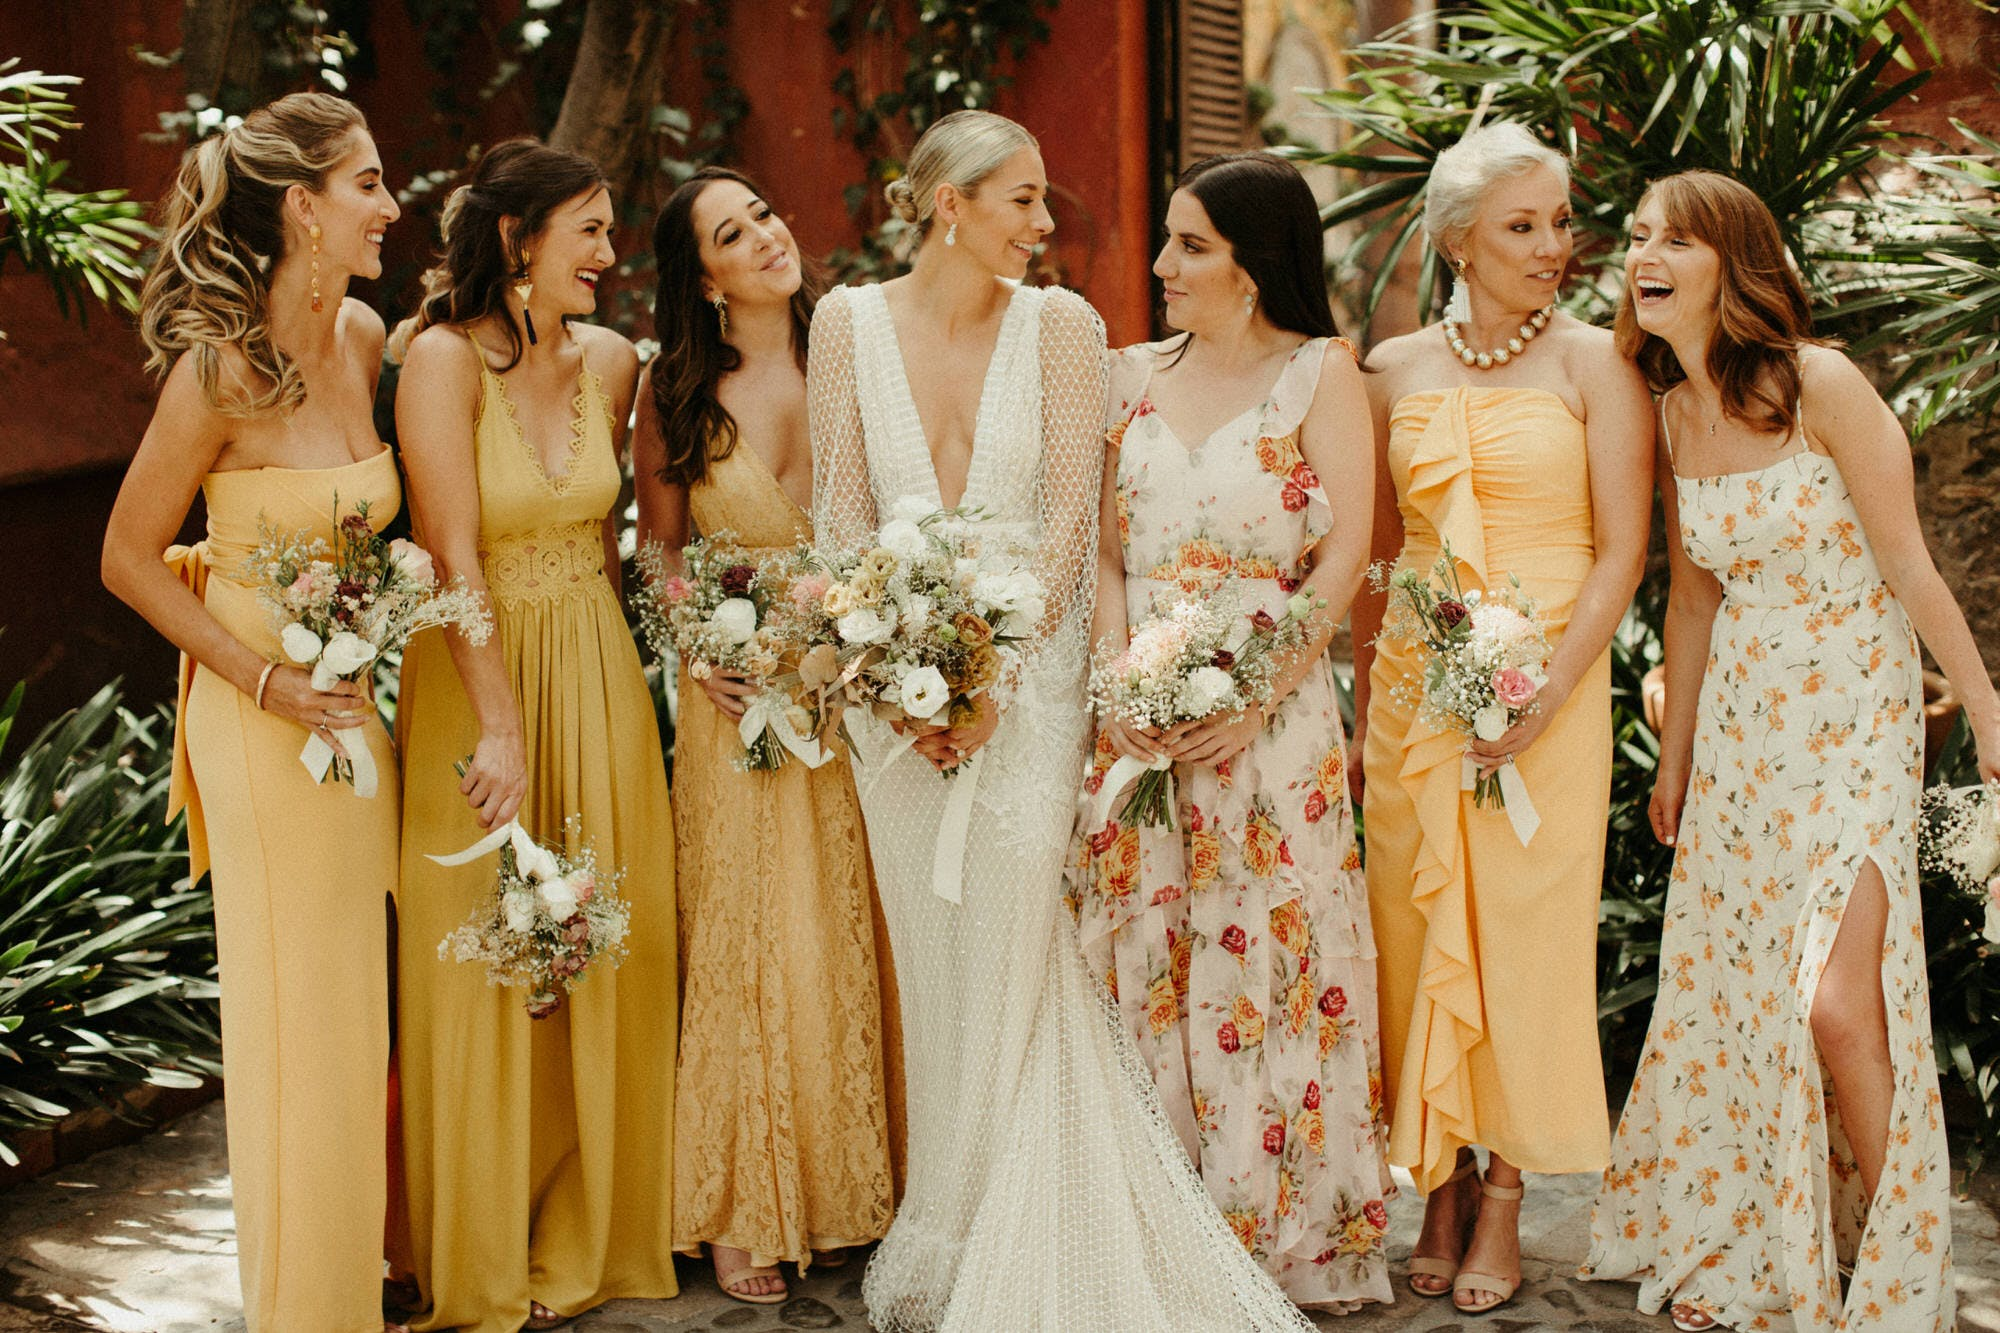 candid shots of bridal party